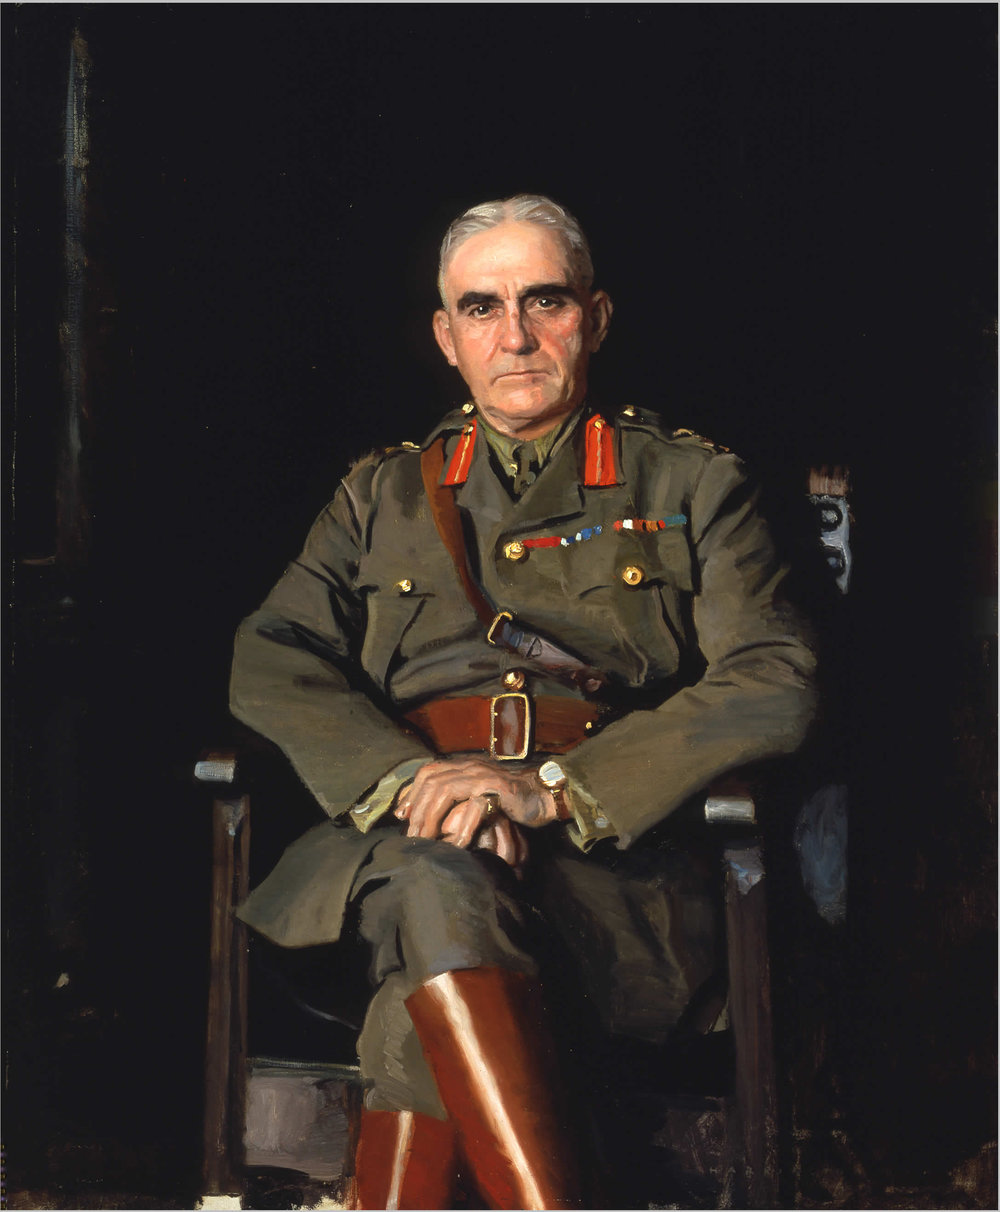 A portrait of Sir Sam Hughes, Minister of Militia and Defence from 1911 to 1916. Both he and his son, Garnet, sought revenge after the war by attacking Currie's reputation through editorials. Currie eventually fought back by going to court, winning a high-profile libel case in 1928. (painting by harrington mann, beaverbrook collection of war art, cwm   19710261-0394  )